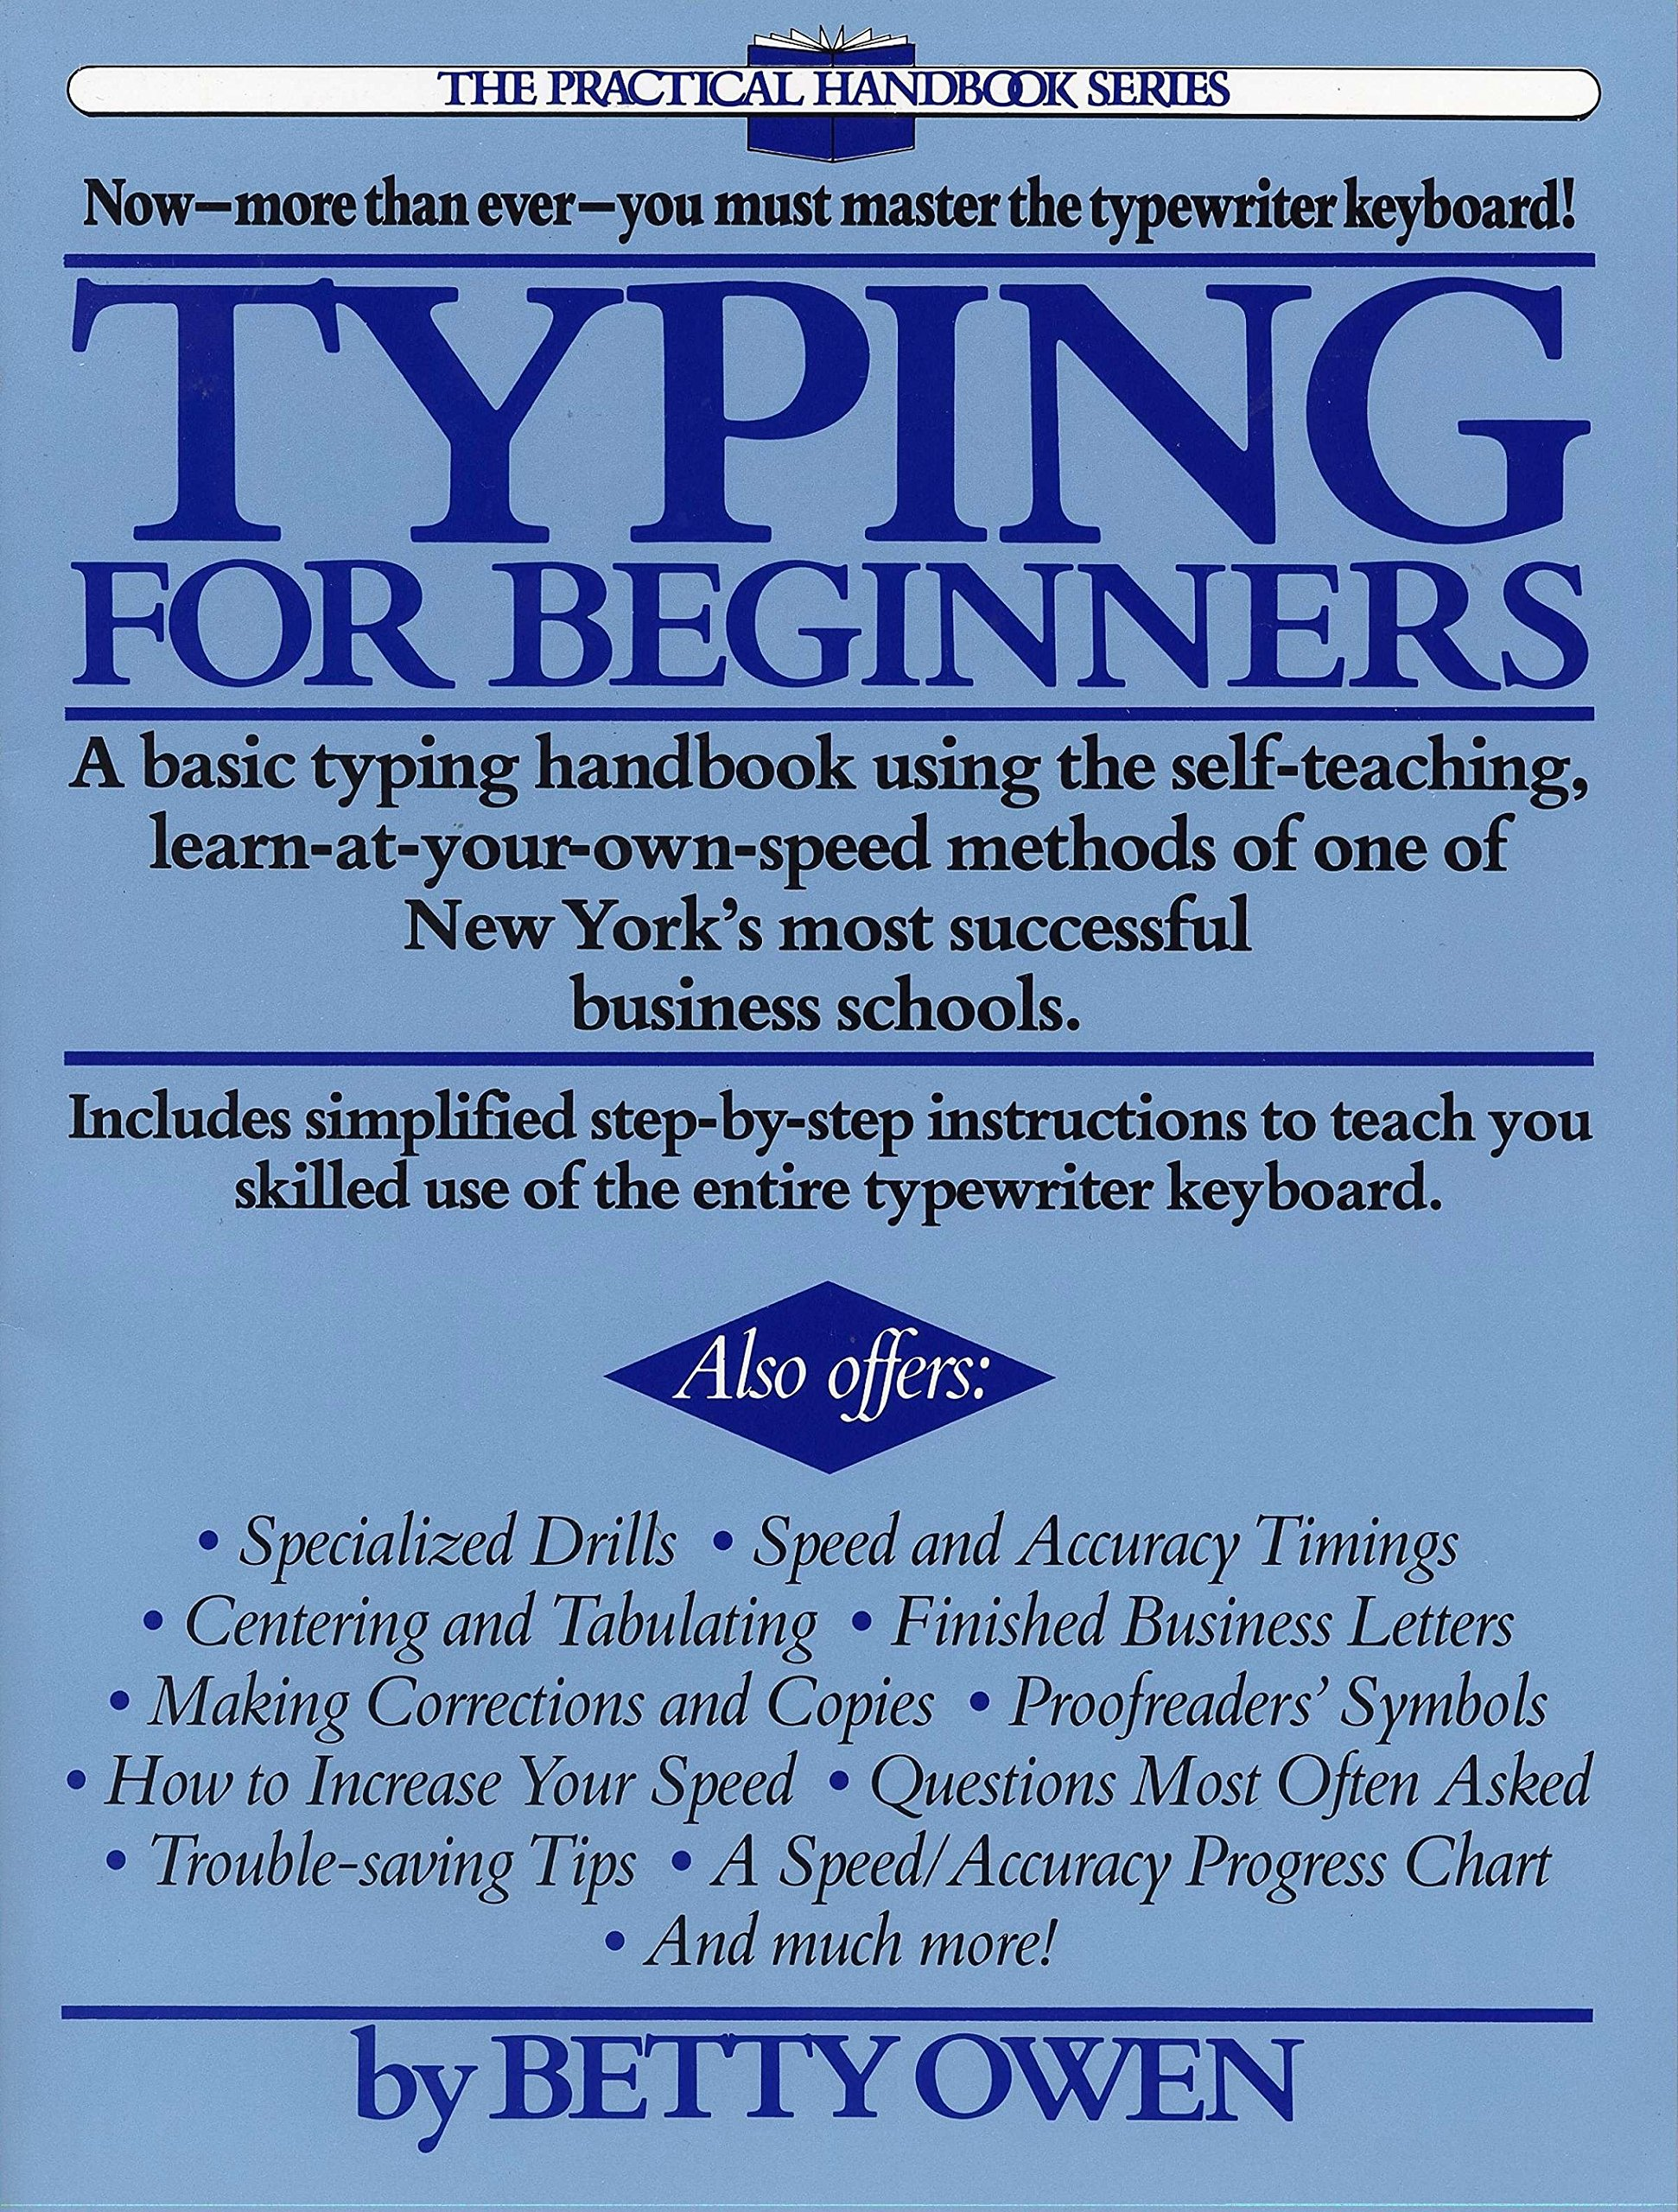 Computer keyboarding for beginners: edward fry: 0014467027647.